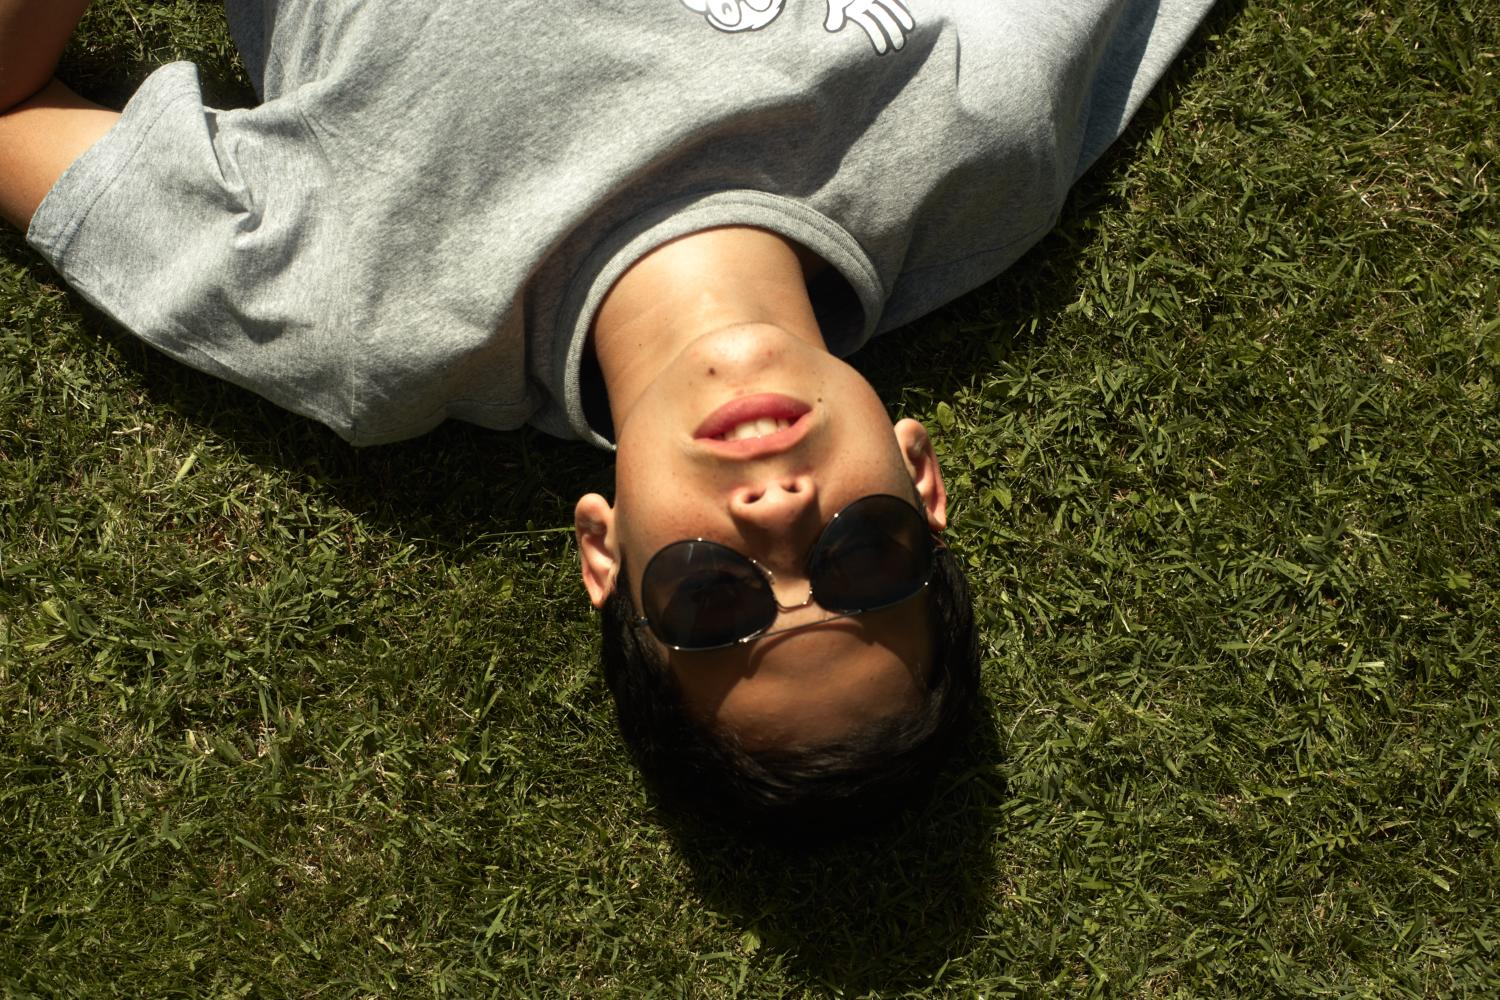 A person wearing sunglasses and lying on the grass